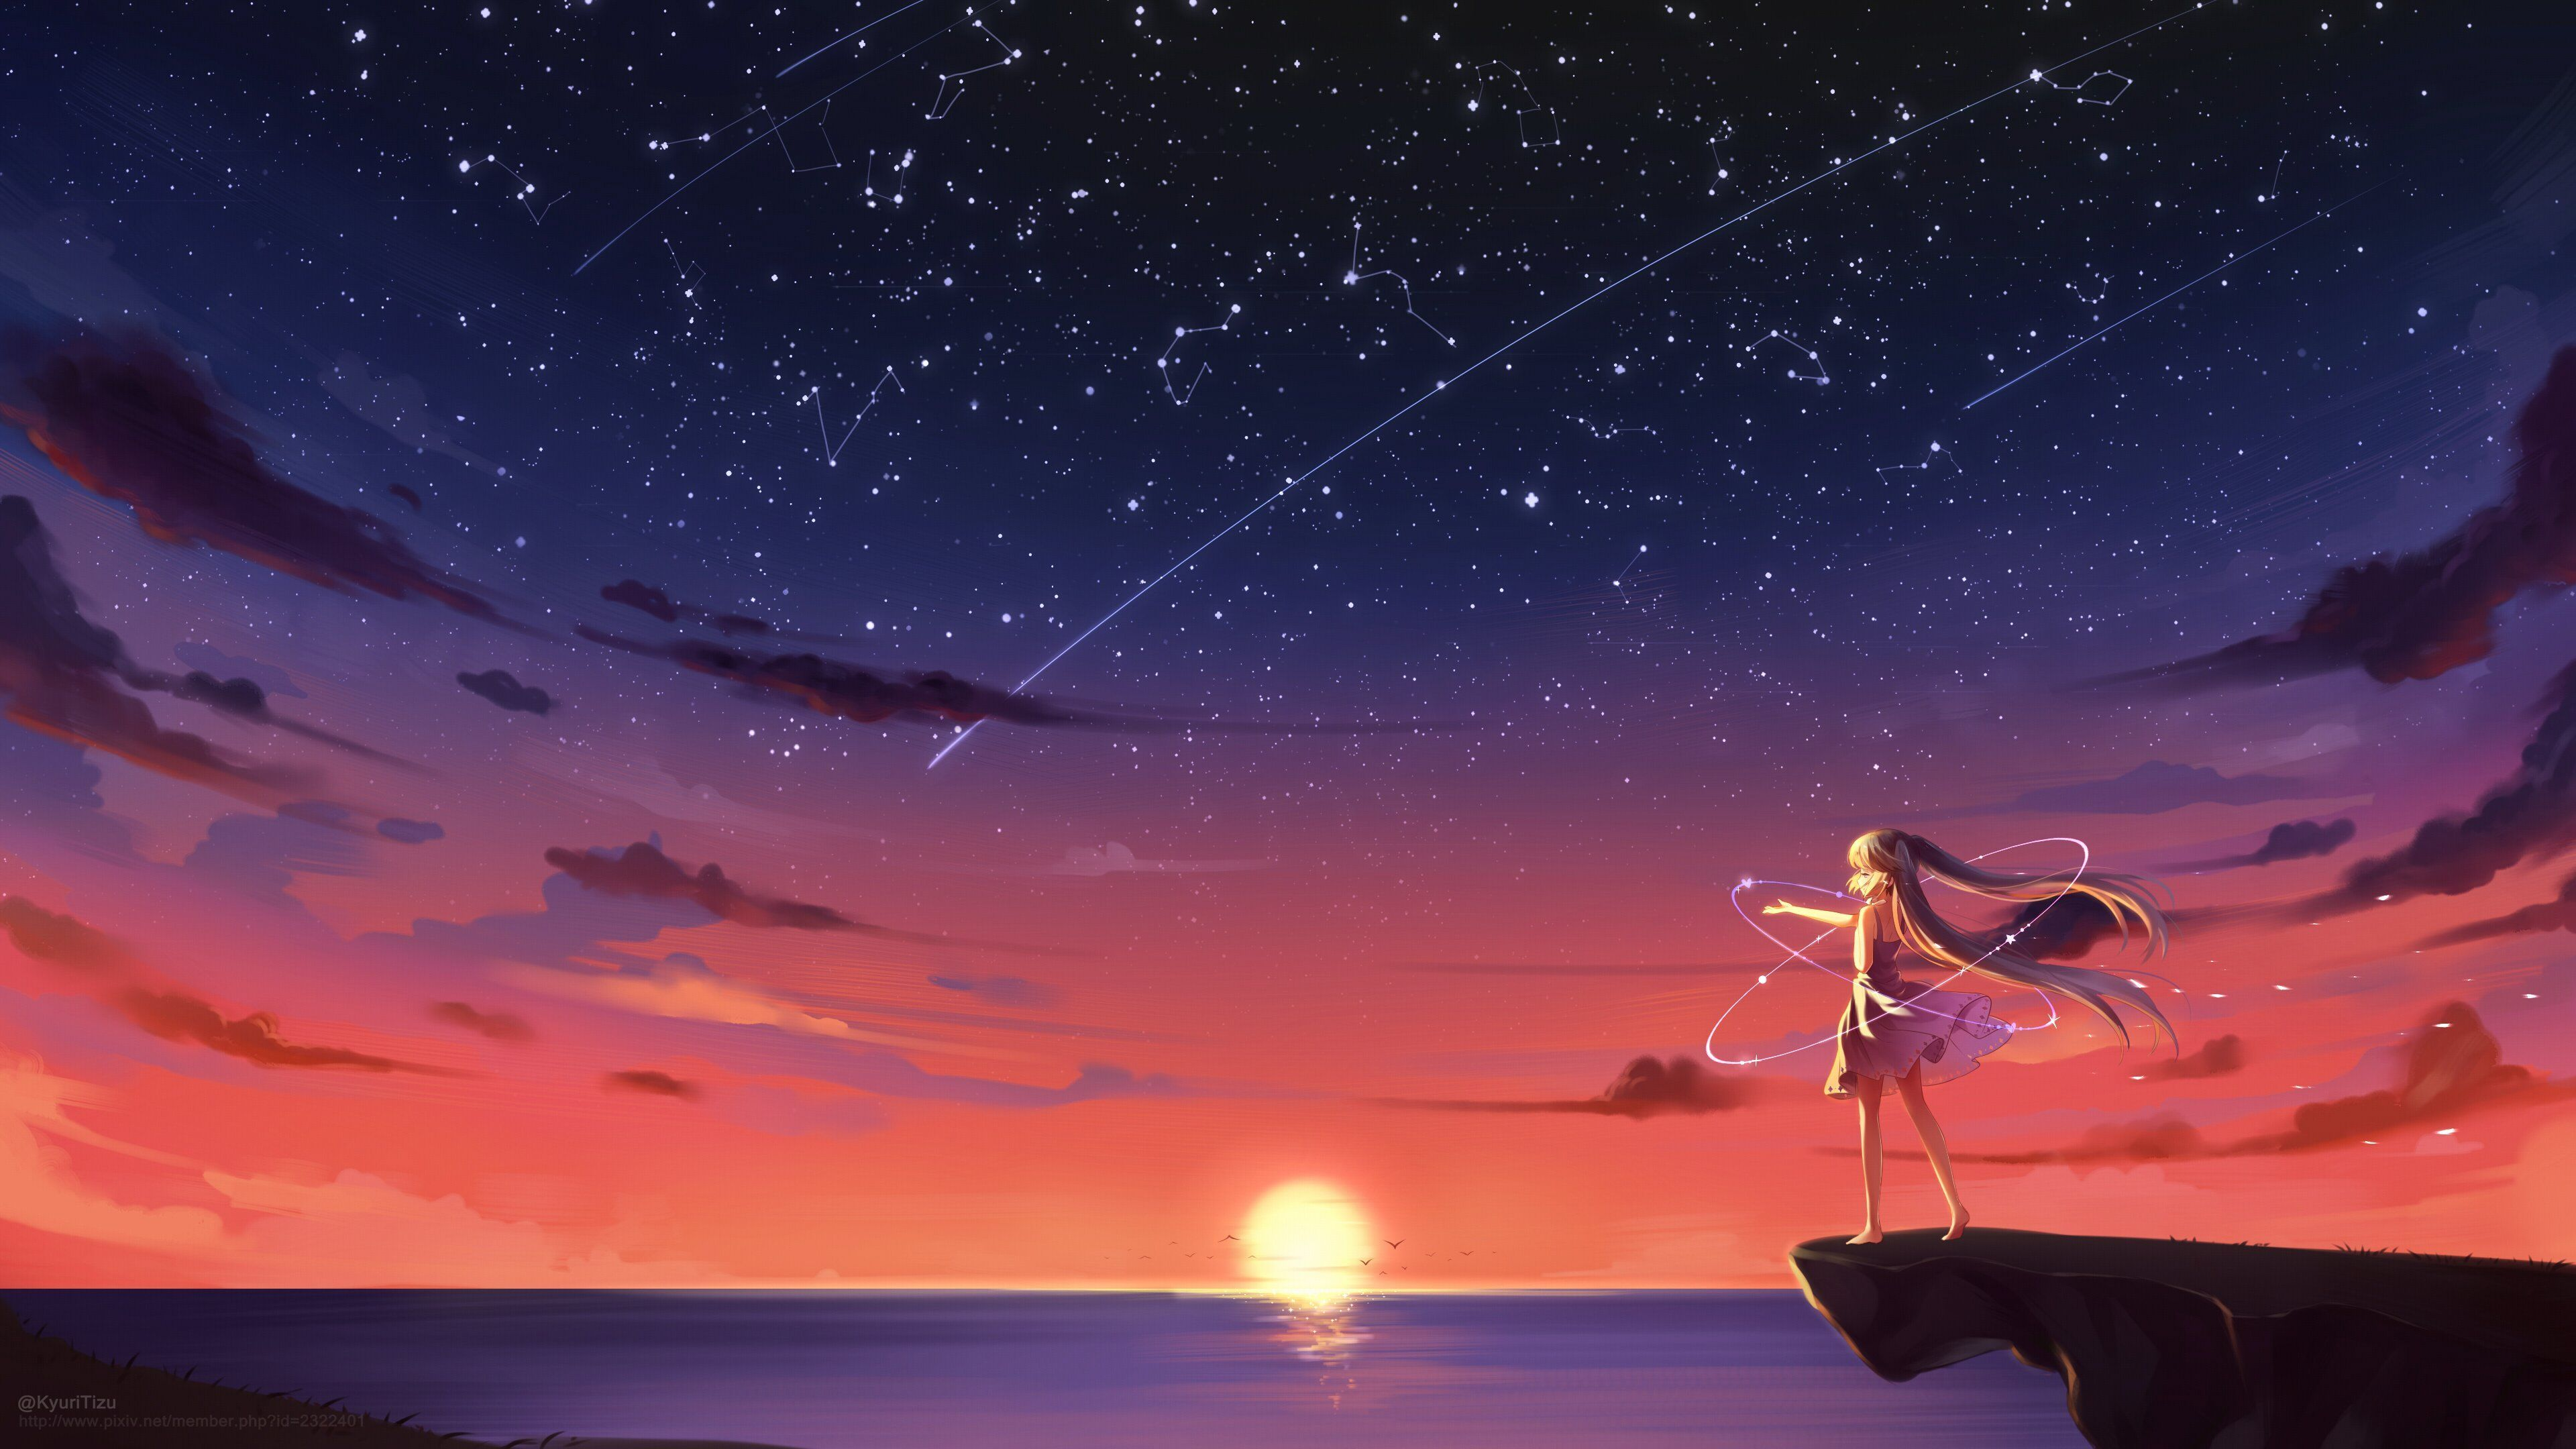 Pin By Cameron G On Art Ideas In 2020 Anime Scenery Anime Scenery Wallpaper Sunset Wallpaper